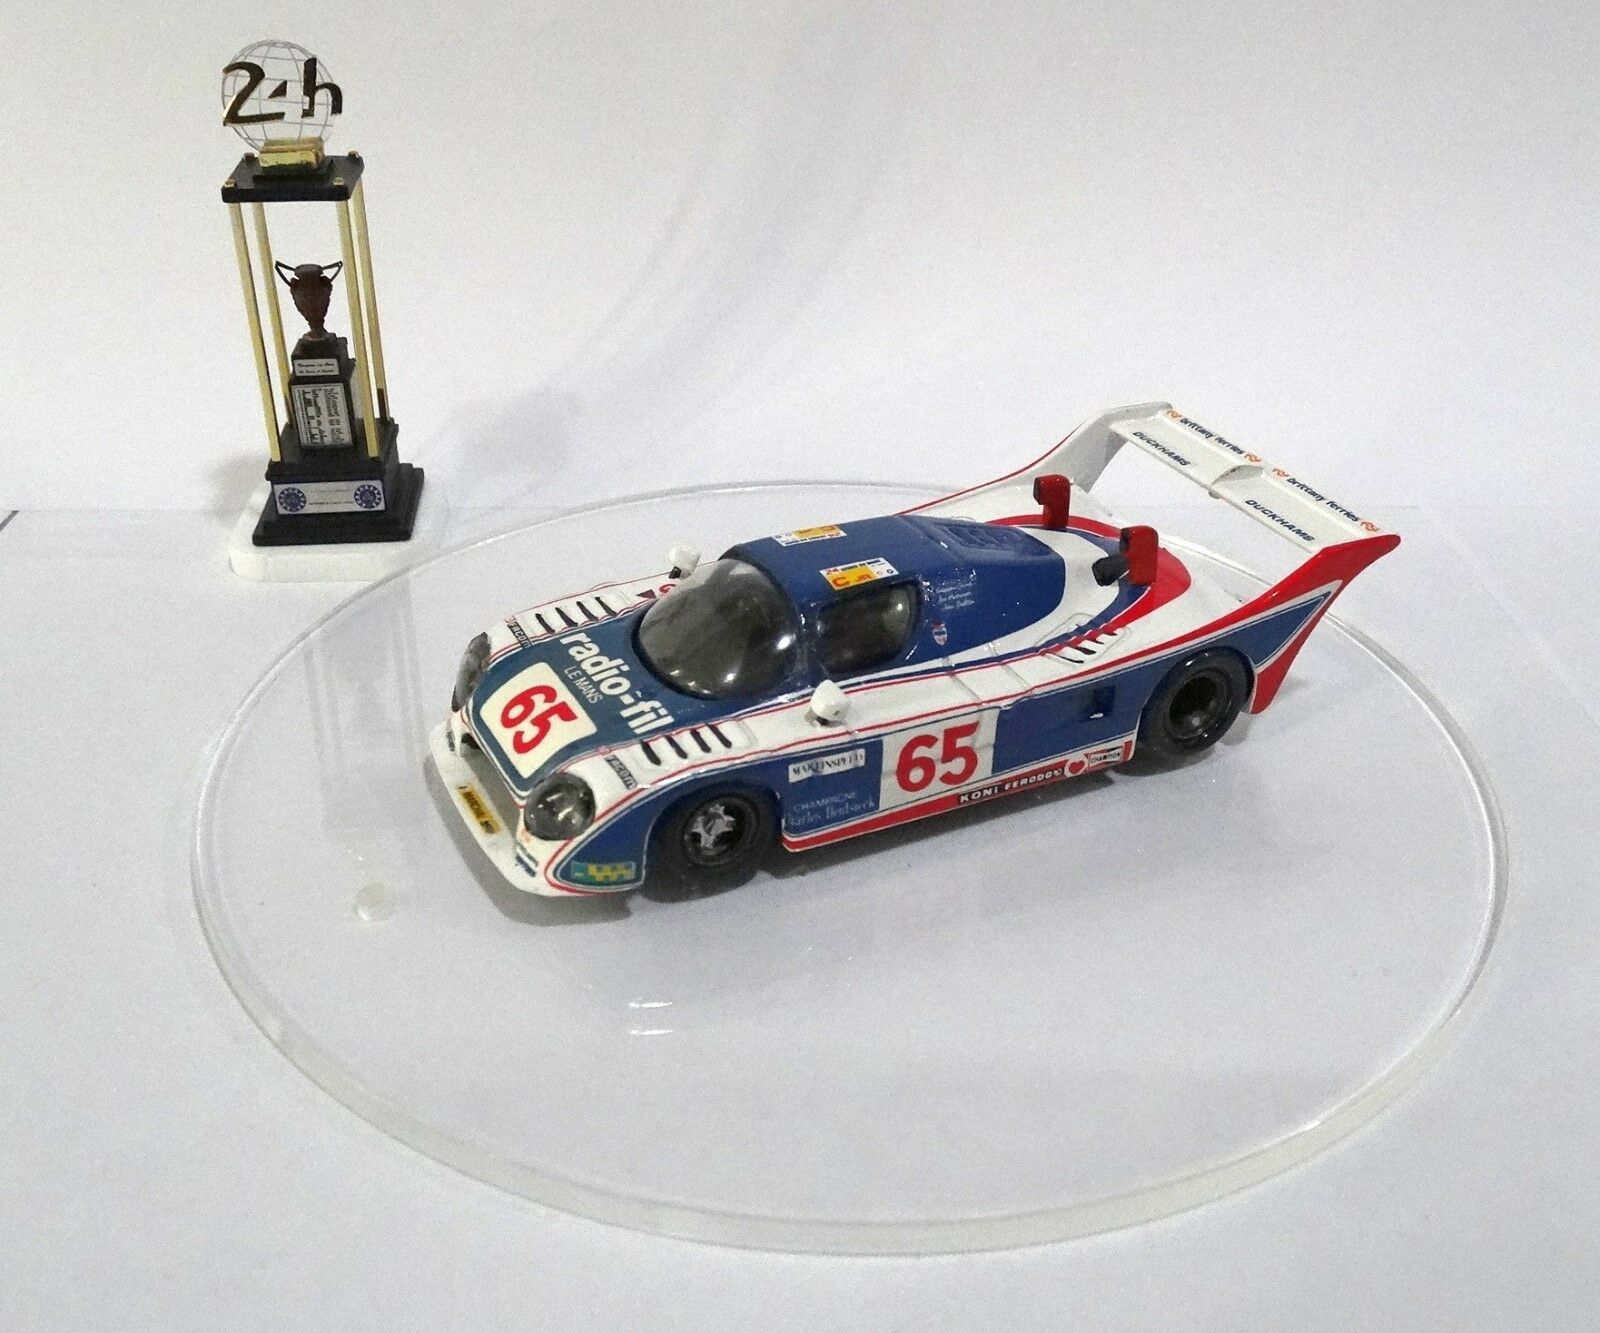 ADA 01 MM  65  Le Mans 1983 Built Monté Kit 1 43 no spark MINICHAMPS